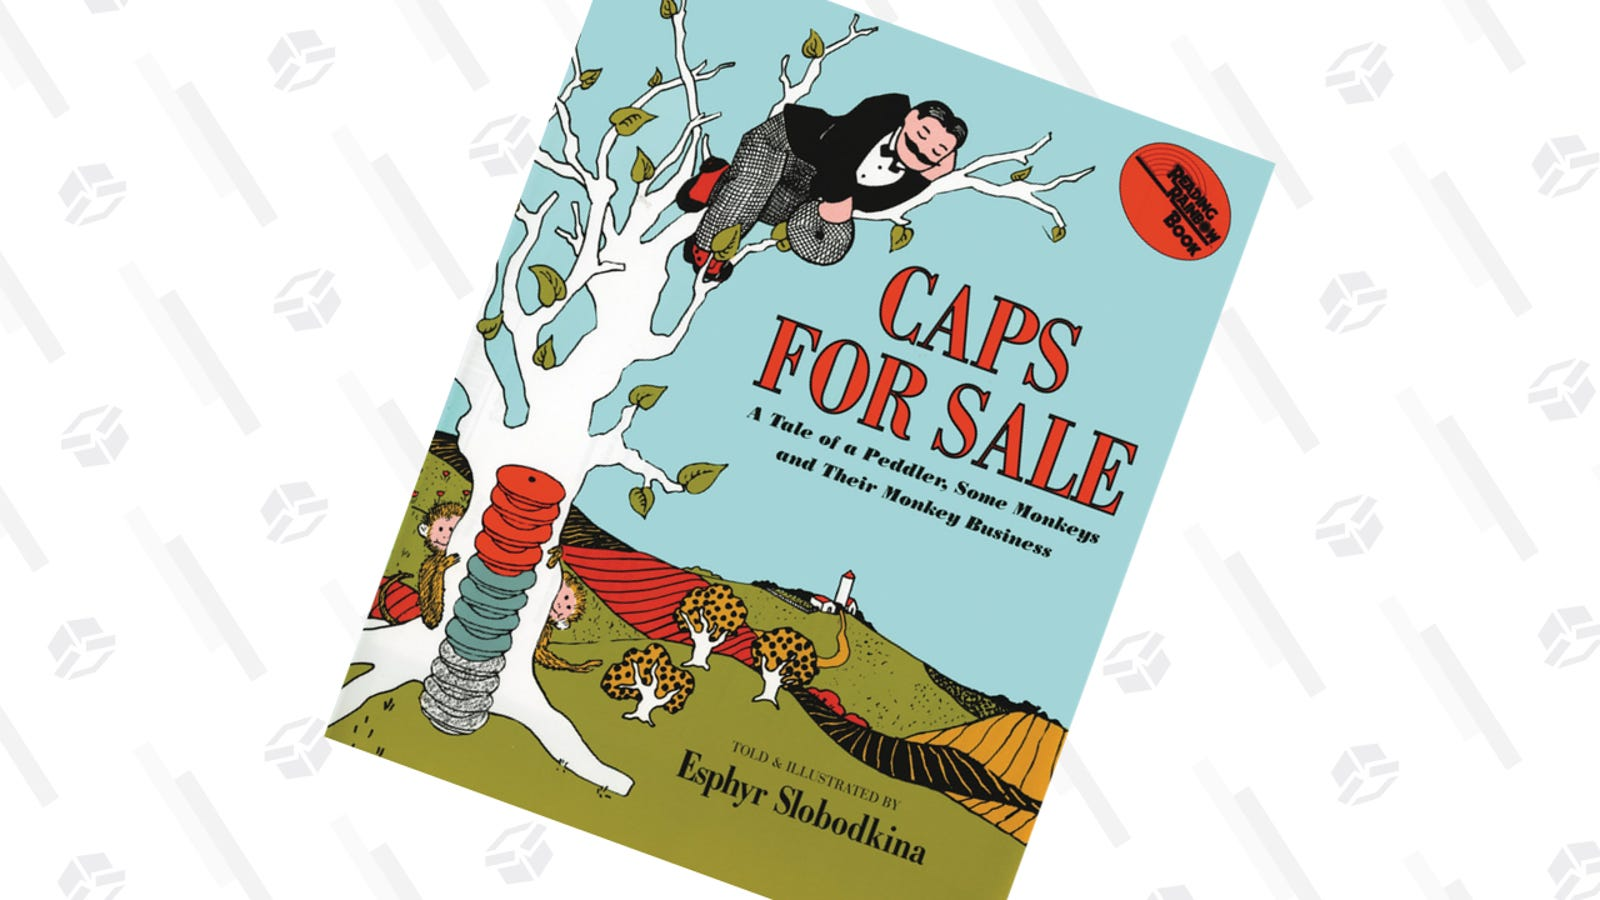 "Caps For Sale by Esphyr Slobodkina This was my favorite book as a kid and I was delighted to find that it's still a hit today and holds up well (no weirdly sad or menacing elements). It's fun to have babies and toddlers act out the physical elements (stamping feet, shaking fists…) and yelling ""You monkeys you, you give me back my caps"" at the top of your lungs."